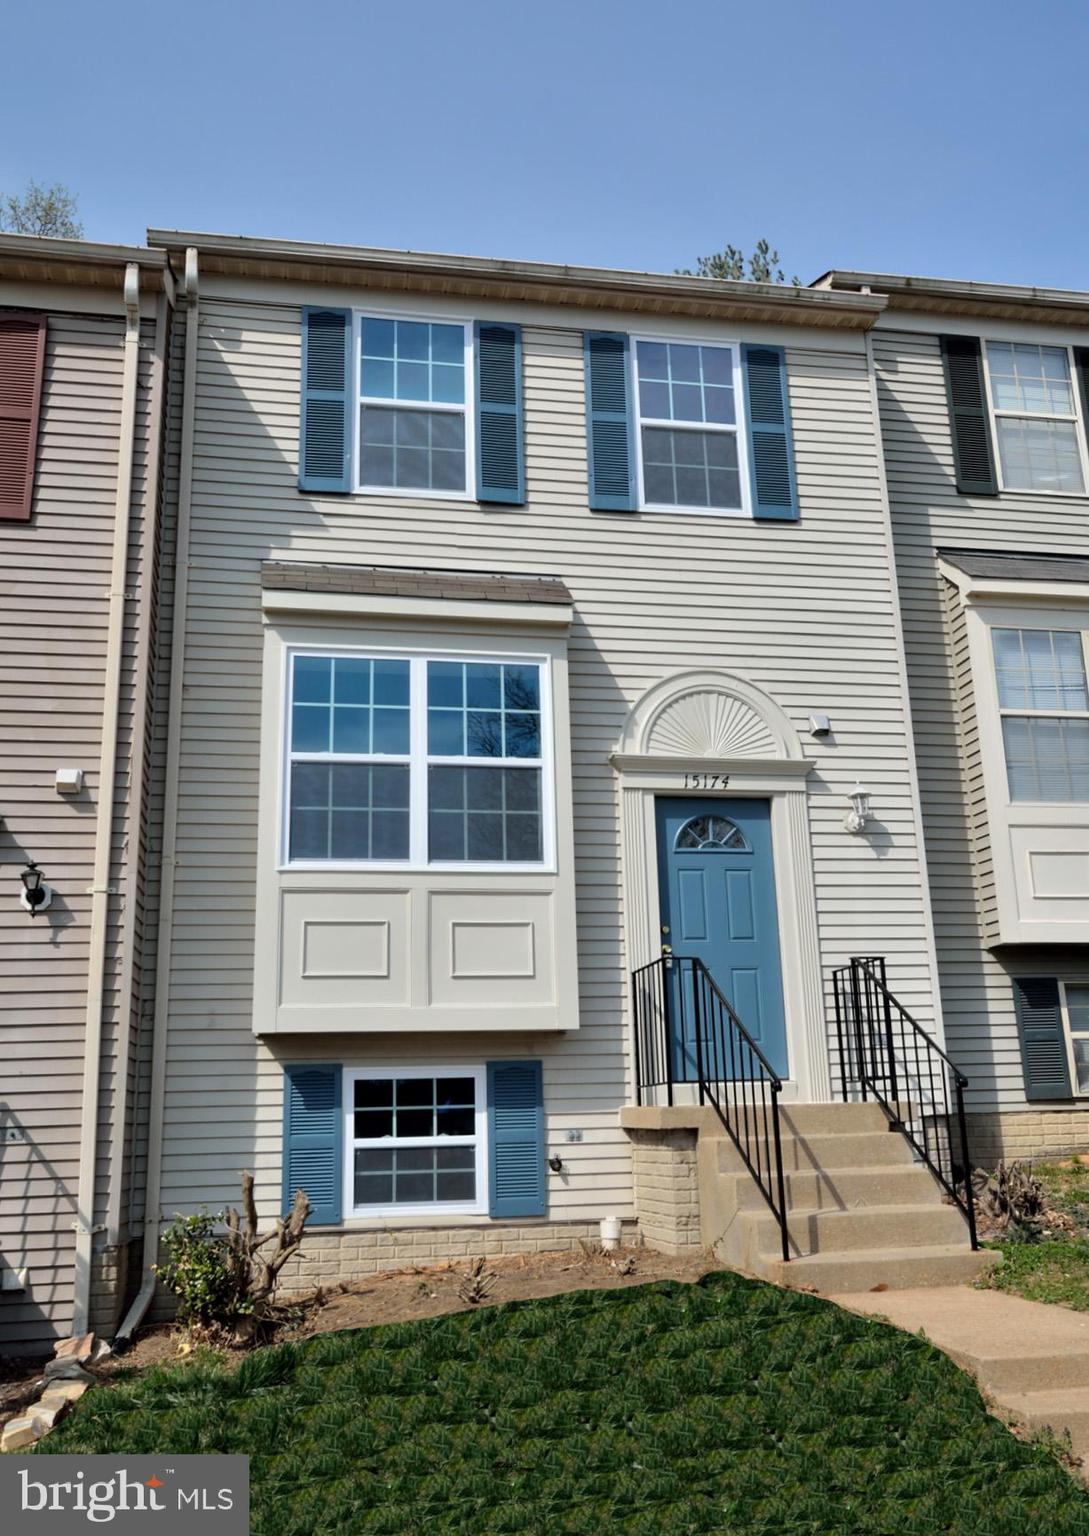 COMPLETELY RENOVATED. NEW AMERICAN CRAFTSMAN ENERGY-EFFICIENT THERMOPANE WINDOWS, WALNUT-STAINED OAK HARDWOOD FLOORING, NEW PORCELAIN TILE FLOORING AND NEW CARPETING. SUNLIT LIVING ROOM WITH BOX BAY WINDOWS AND REMODELED KITCHEN WITH NEW GRANITE COUNTERTOPS, NEW SHAKER-STYLE CABINETRY, RECESSED LIGHTING AND NEW STAINLESS STEEL SAMSUNG APPLIANCES. UPPER LEVEL FEATURES NEW CARPETING AND NEW FULL BATHS. WALK-OUT LOWER REVEALS FAMILY ROOM WITH FIREPLACE, NEW FULL BATH AND 4THBEDROOM/IN-HOME OFFICE. SUNDECK ENJOYS YEAR-ROUND WOODED VIEWS. GREAT LOCATION CONVENIENT TO INTERSTATE ROUTE 95, QUANTICO AND ALL MAJOR COMMUTER ROUTES.